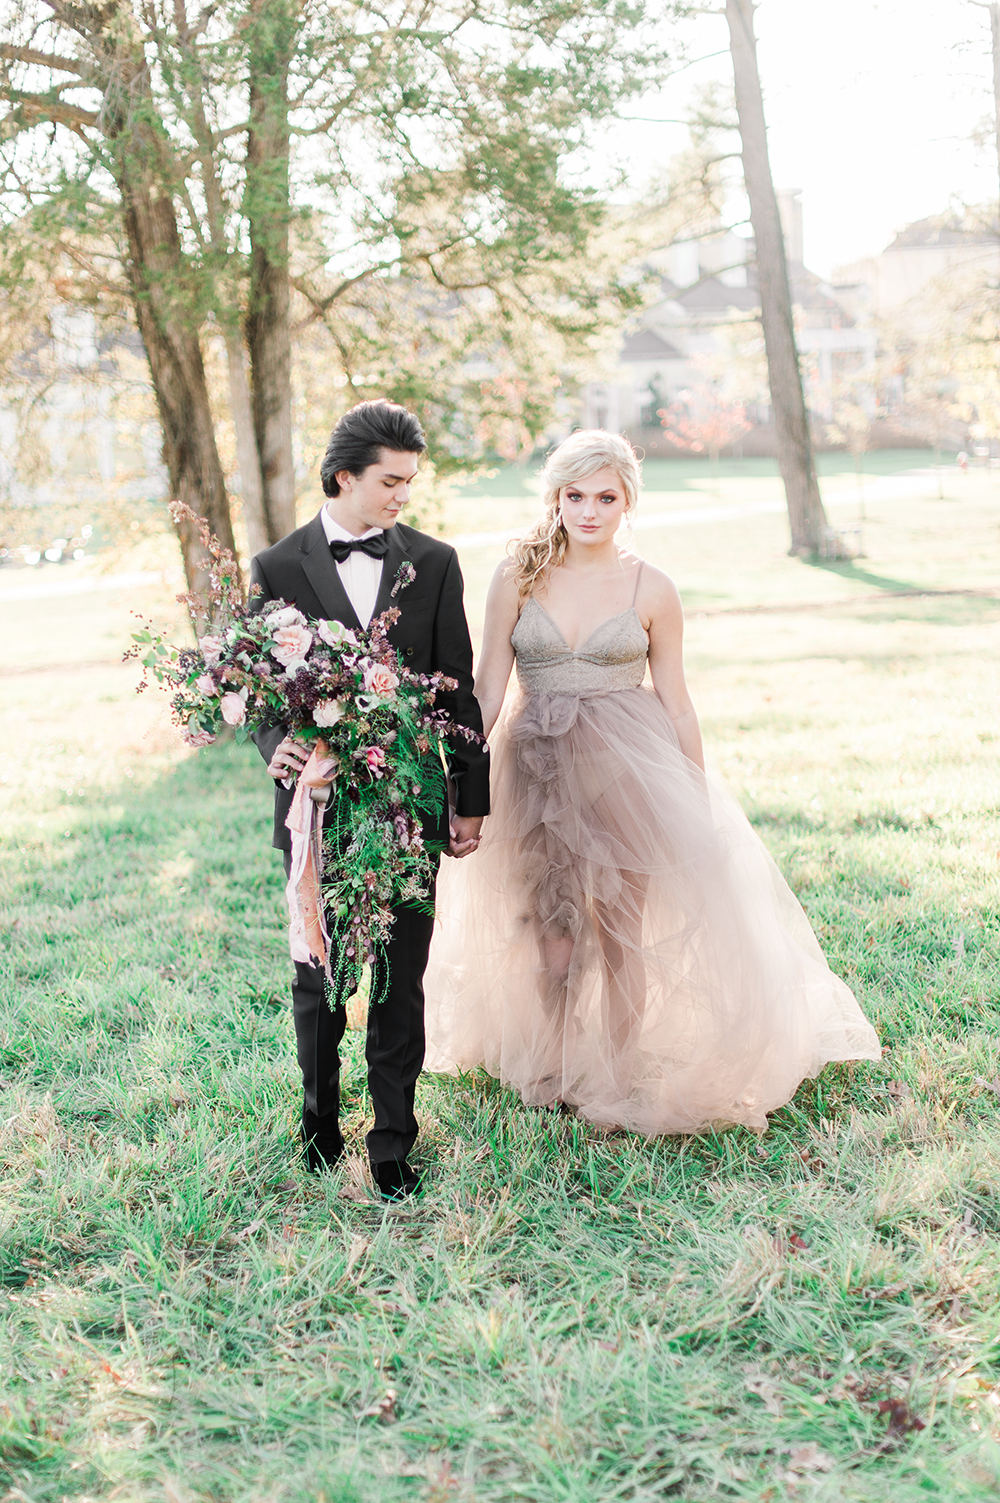 bride and groom - photo by Jenny B Photos http://ruffledblog.com/ethereal-wedding-inspiration-with-vintage-accents